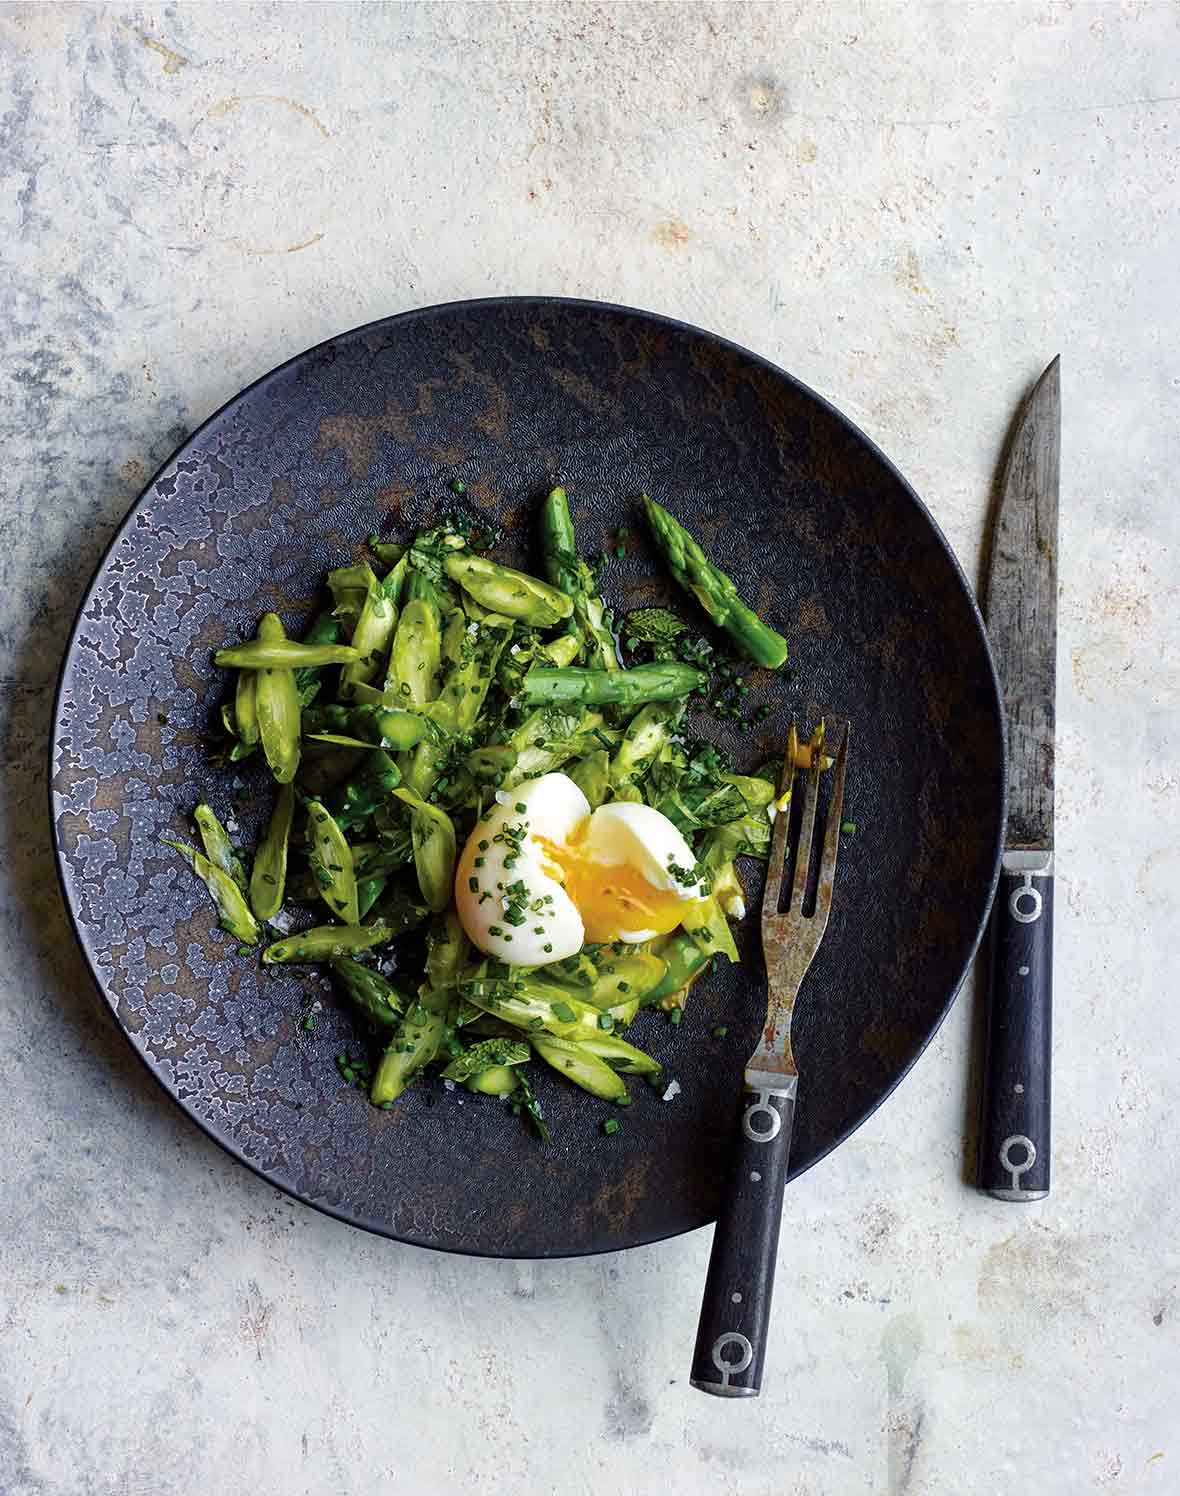 Asparagus and herb salad with chopped parsley, basil, tarragon, and mint and a broken soft boiled egg on a plate, fork and knife